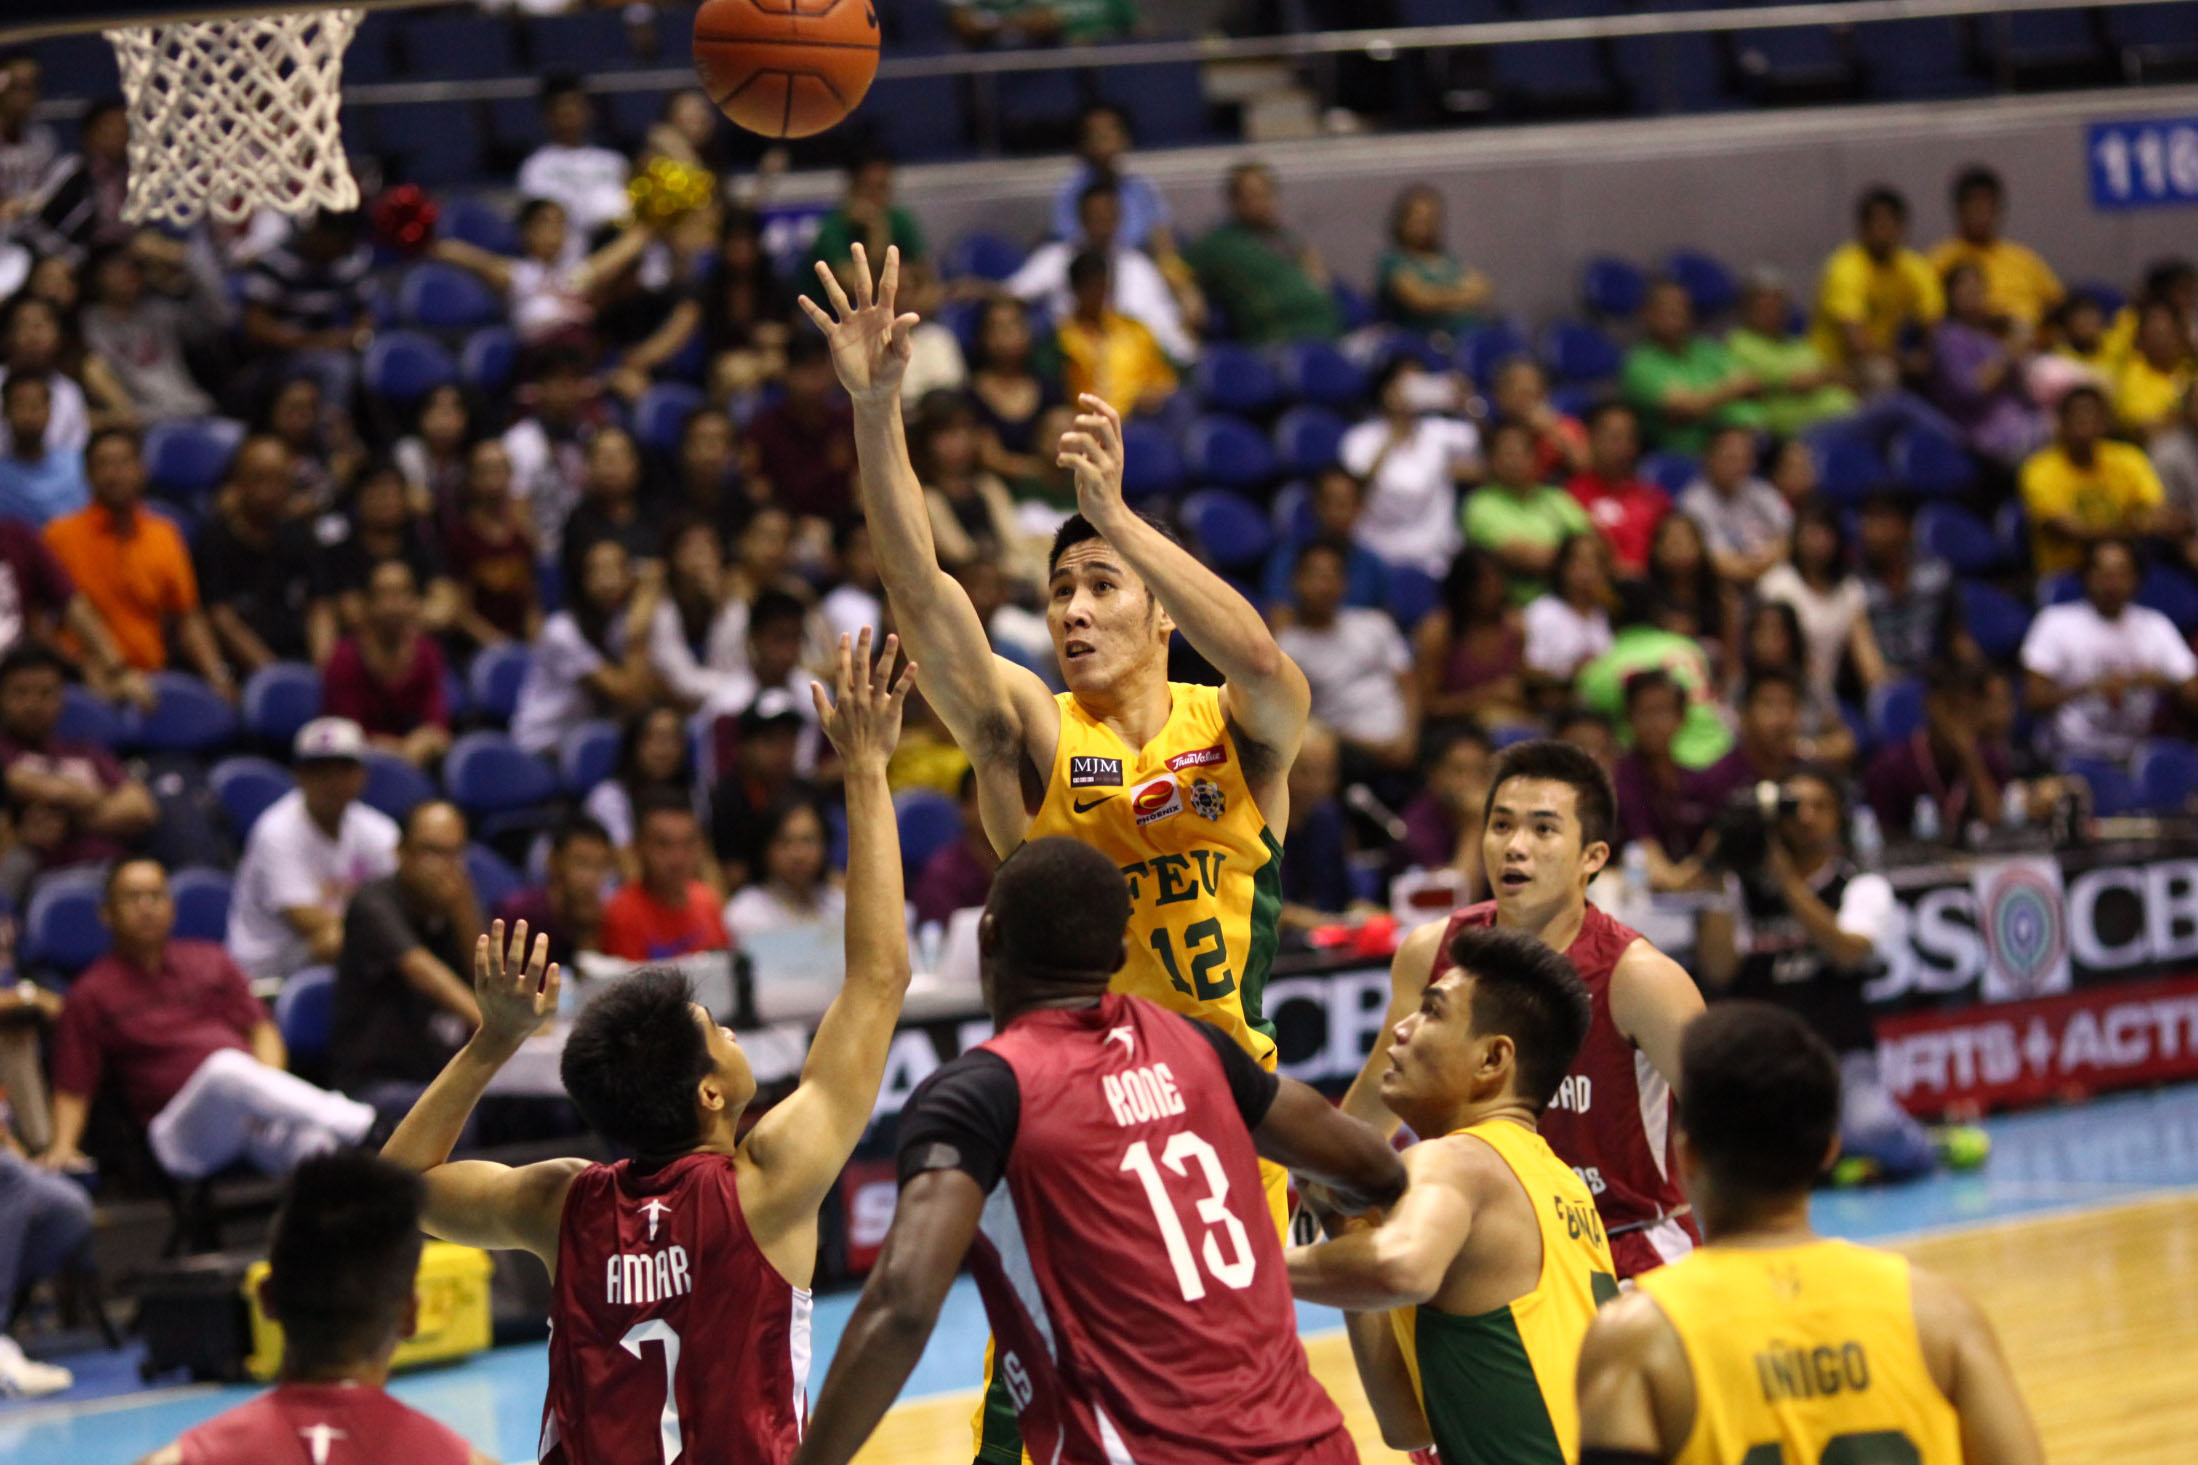 BELO-TASTIC. The Tamaraws have been getting by the skin of their teeth recently thanks to Belo's strong play. Photo by Josh Albelda / Rappler